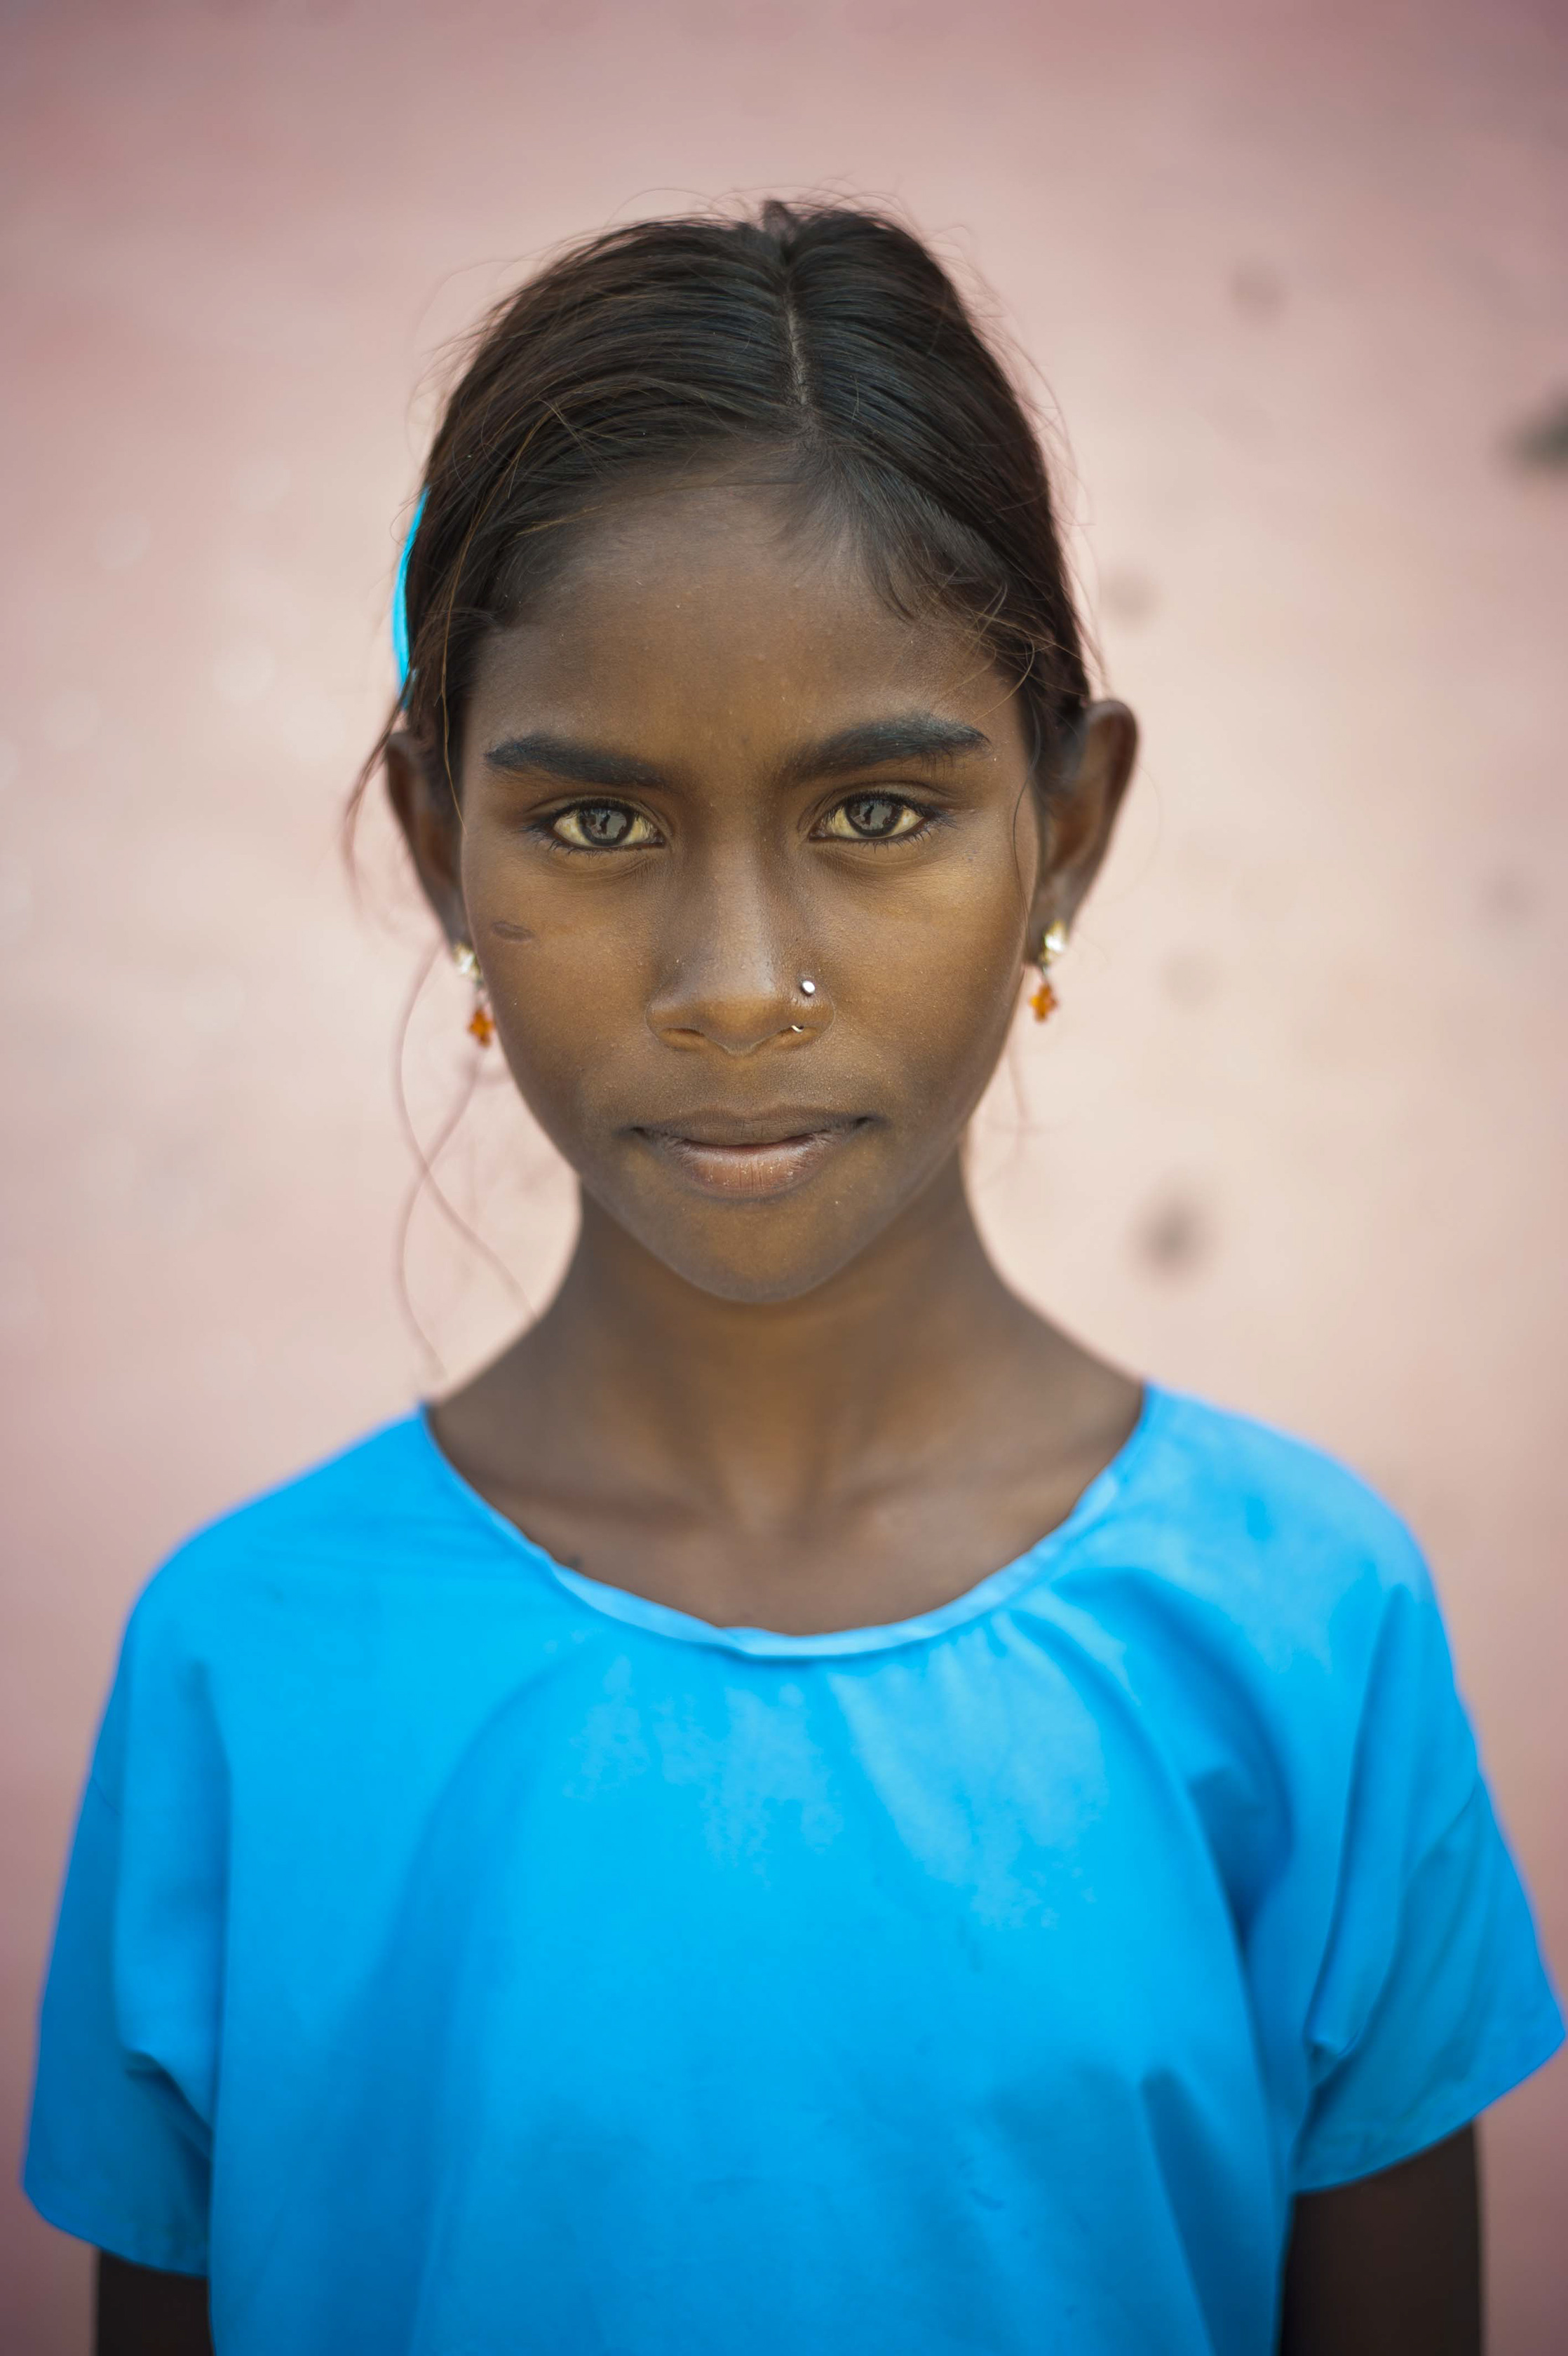 A young girl from Jeetawas, Rajasthan, India. July 2015.